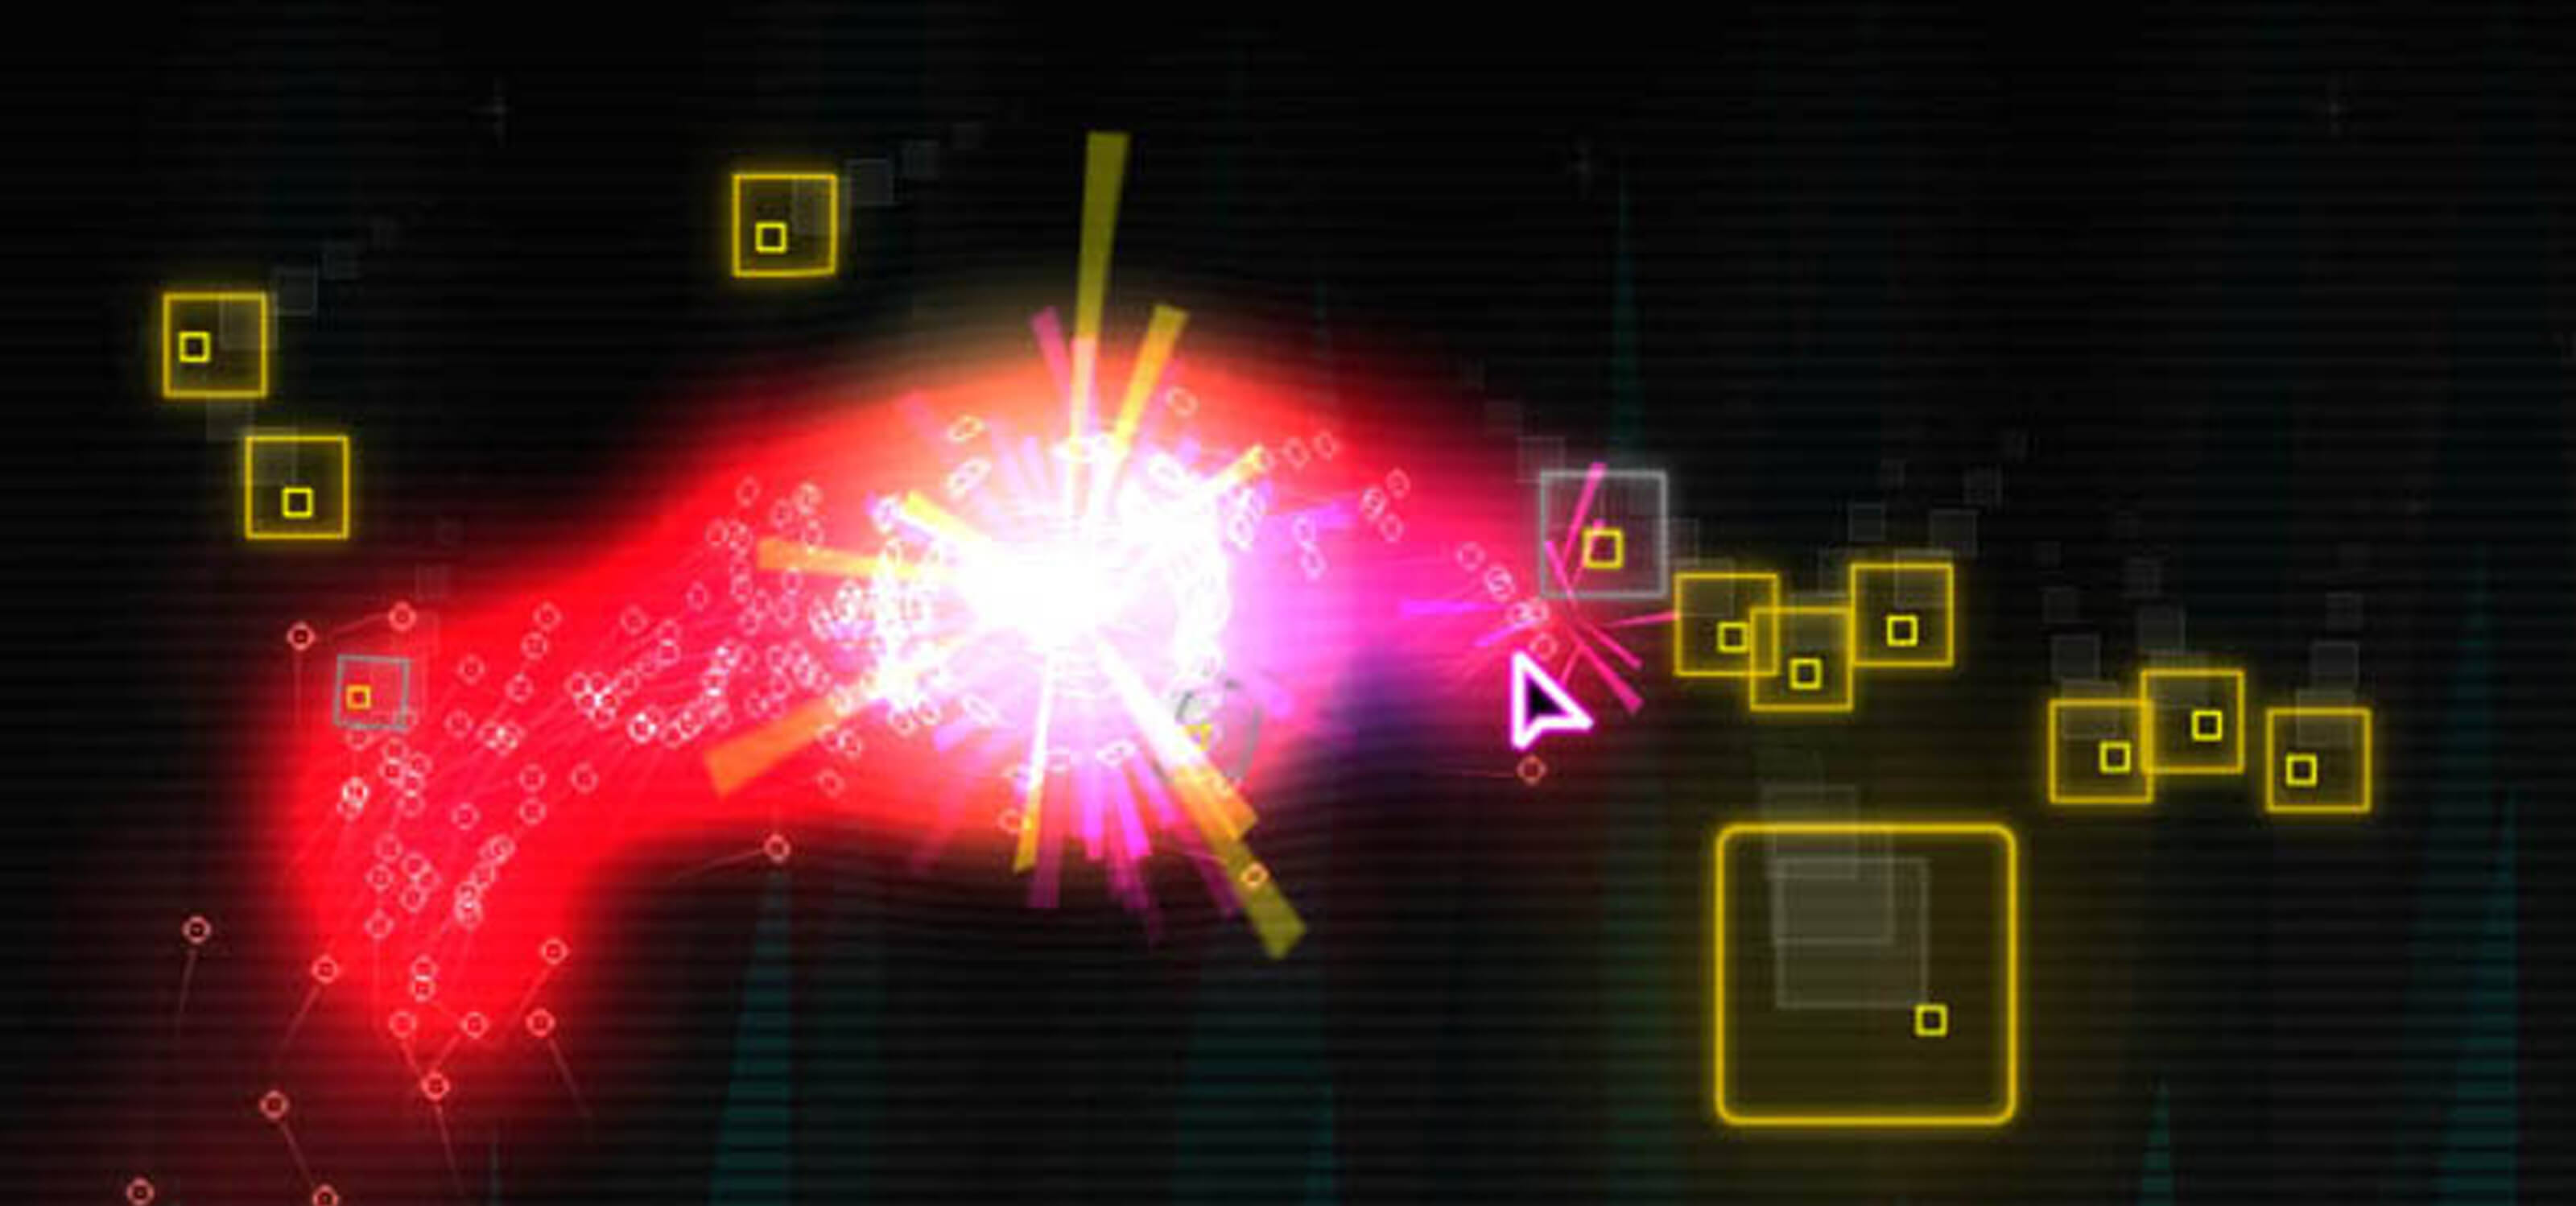 Screenshot of Pixi game, yellow-outlined squares surround a cloud of red in a black background